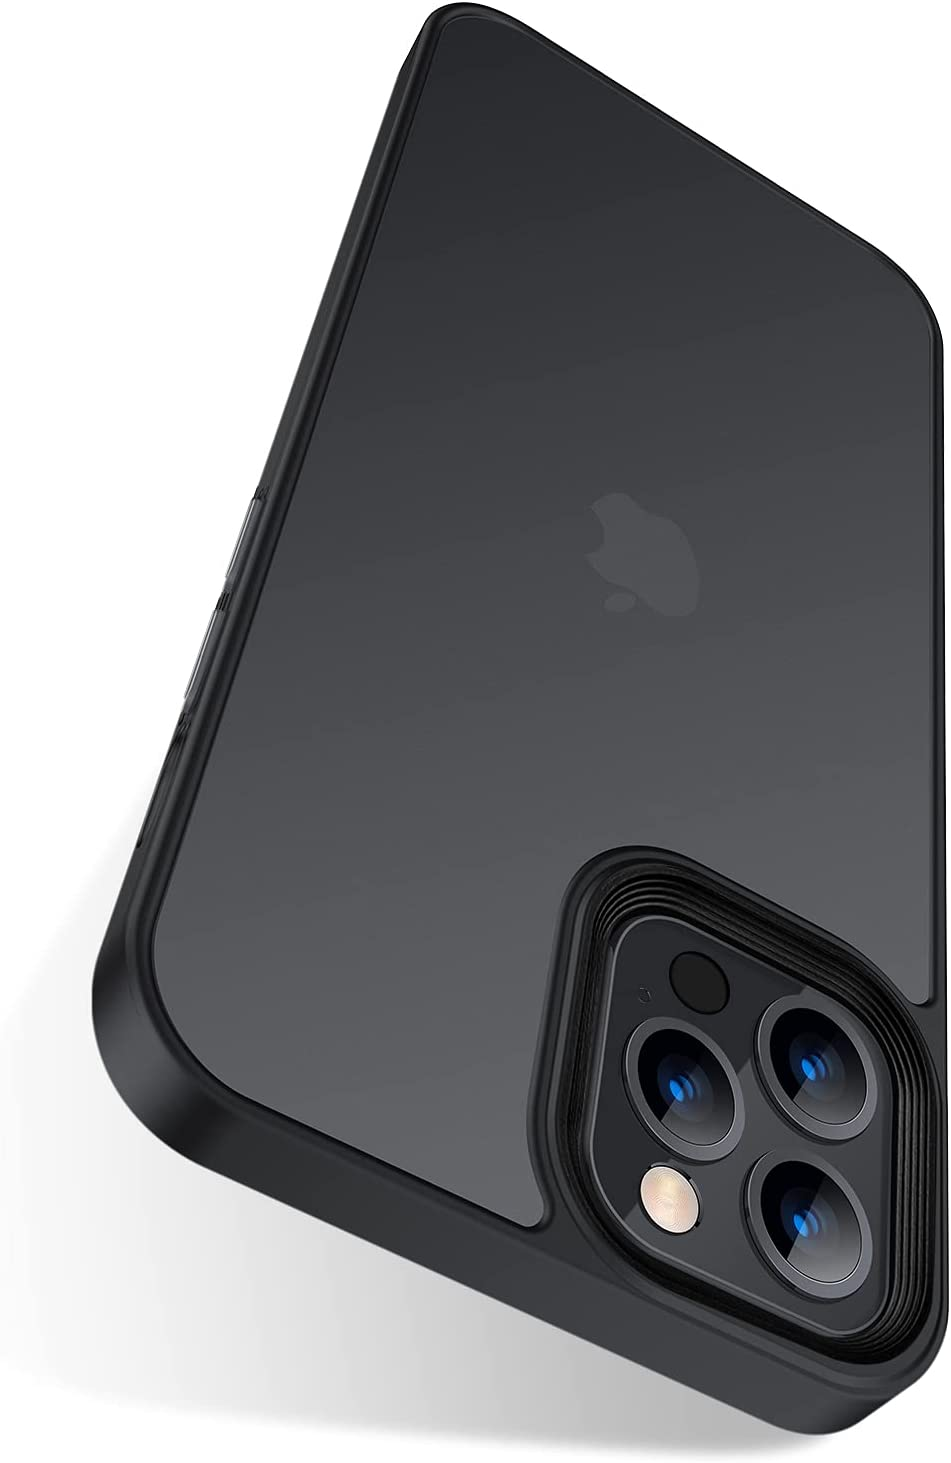 Marspeeder Shockproof Compatible for iPhone 13 Pro Max Case [5X Military Drop Protection] [Metal Button] Translucent Matte Back & Soft Non-Slip TPU Bumper, Slim Fit iPhone 13 Pro Max Case 6.7'', Black